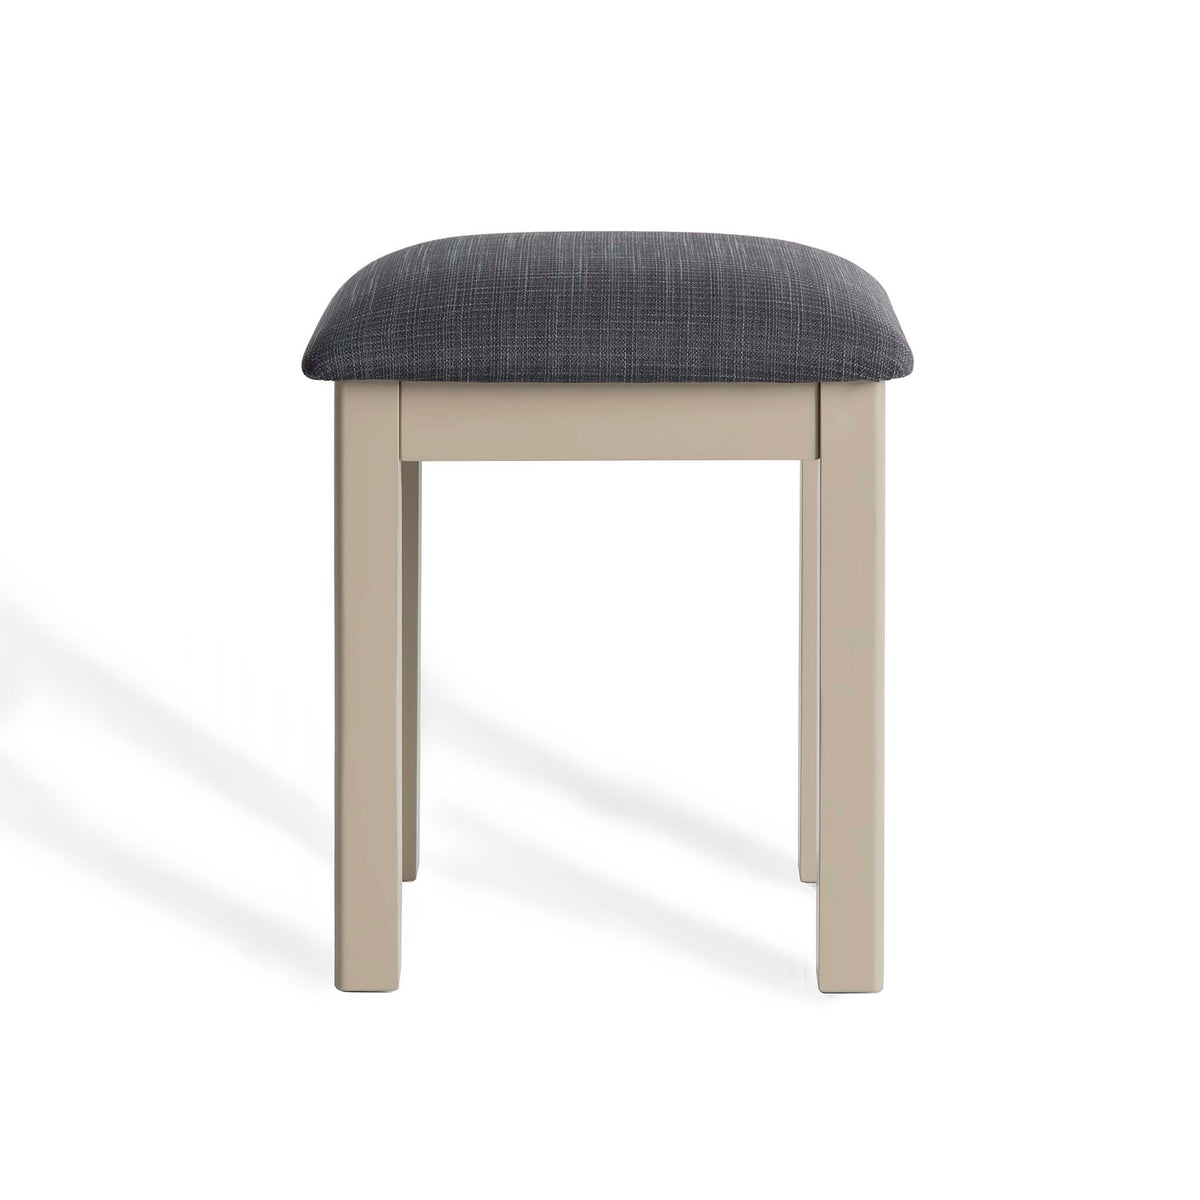 The Padstow Stone Grey Stool by Roseland Furniture